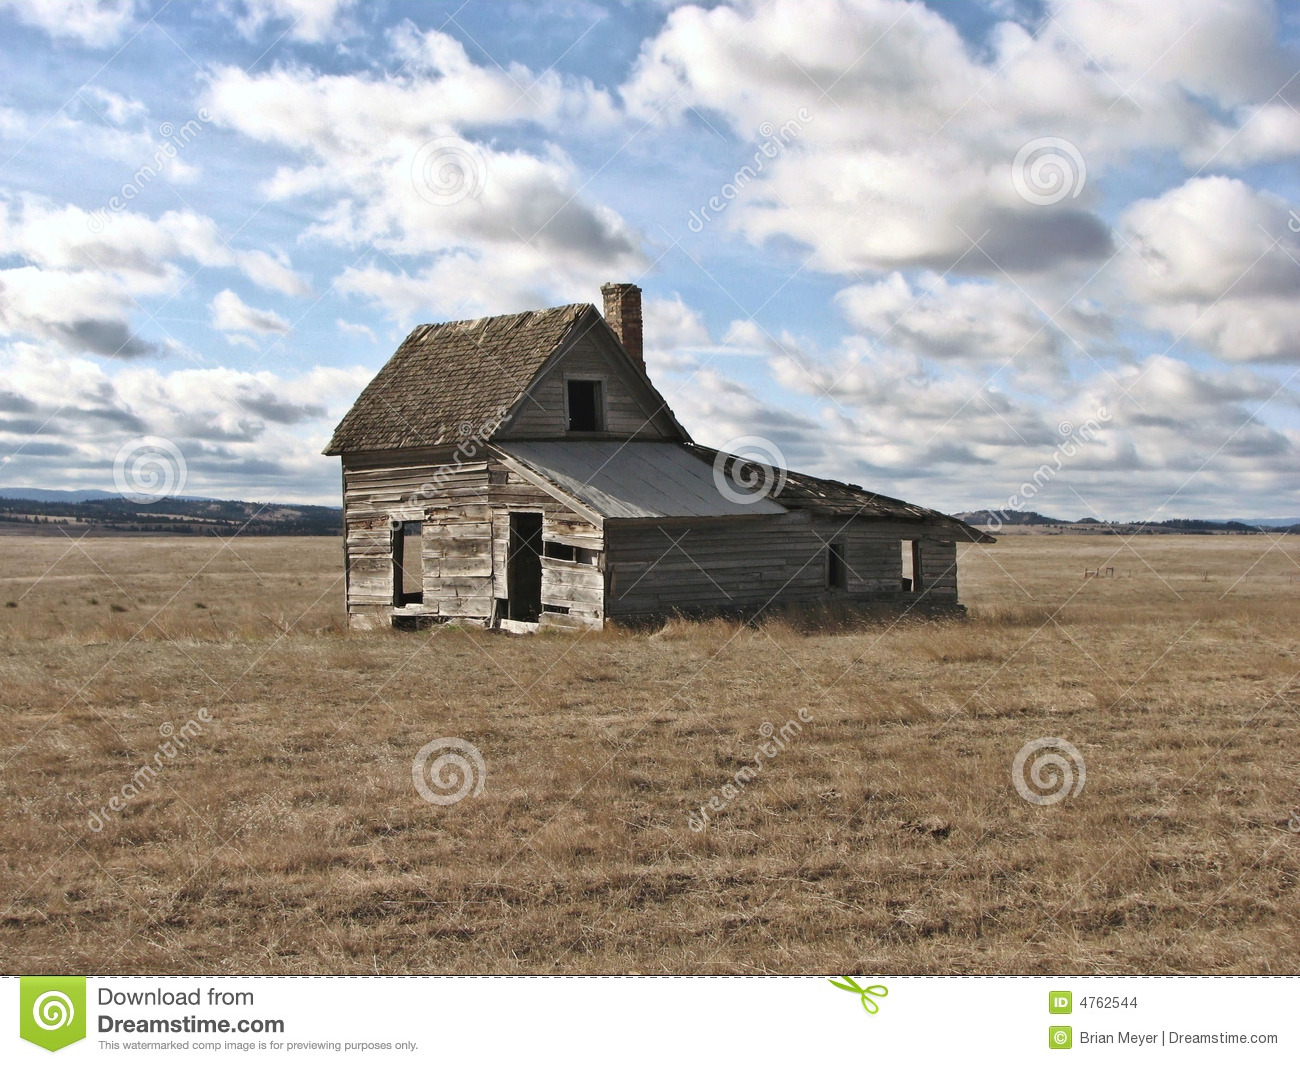 Little House On The Prairie Stock Photo - Image of clouds